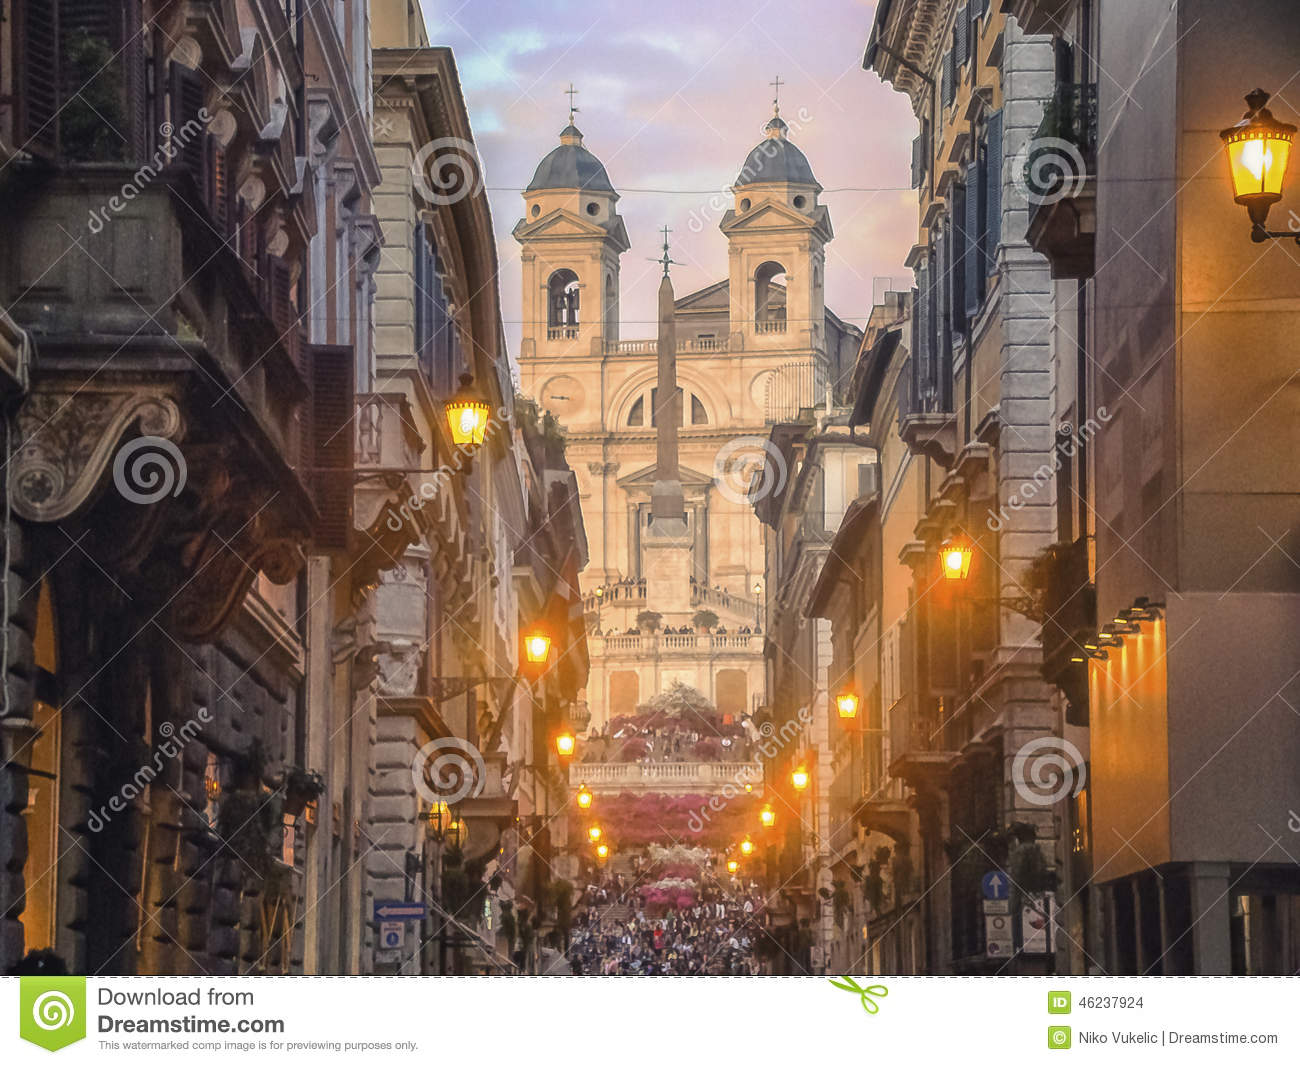 church view latino personals Search through thousands of personals and photos go ahead, it's free to look subscribe matches q quick view x sheilah.